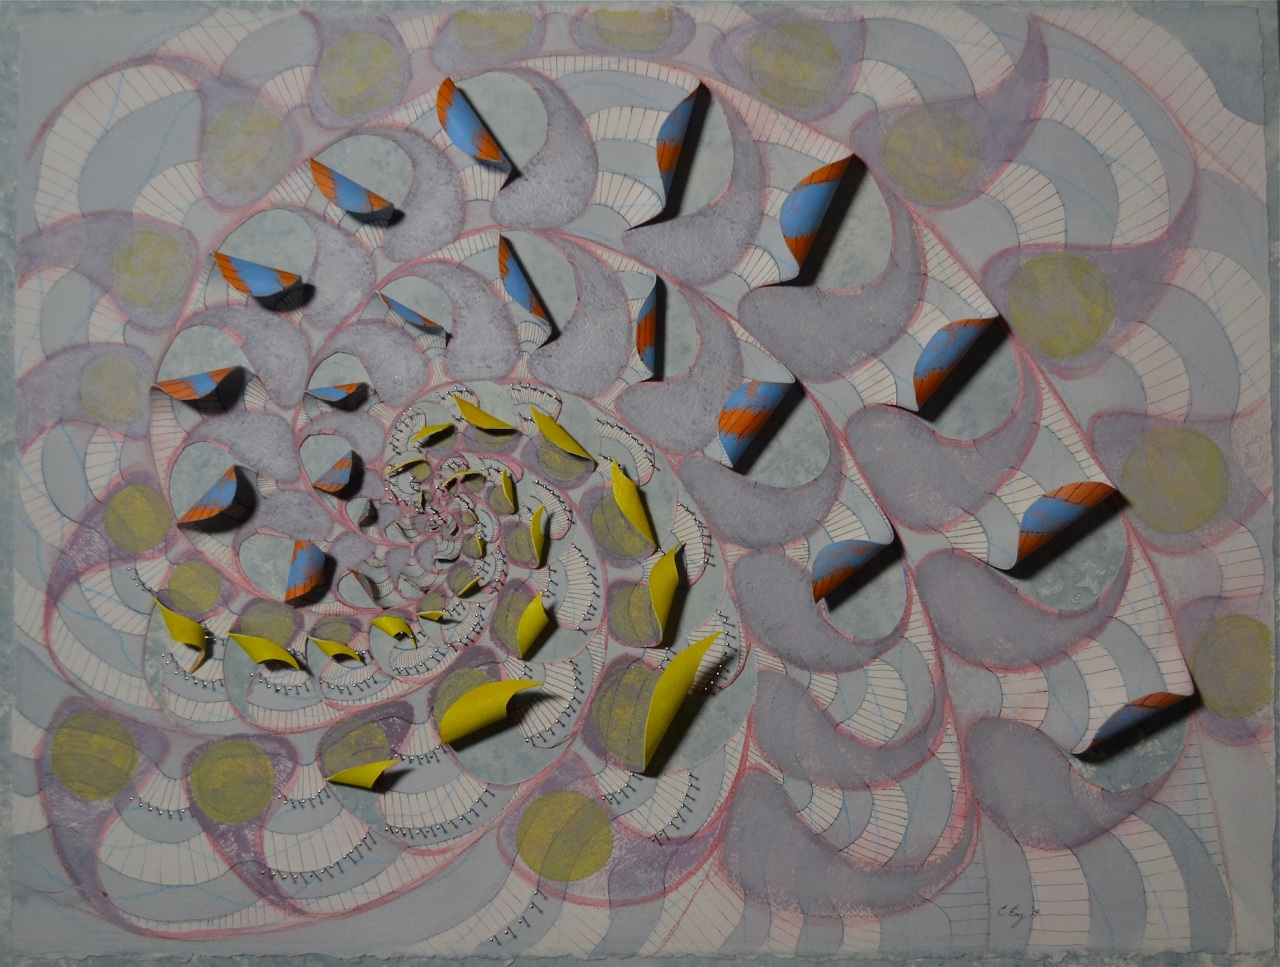 "Motion Commotion acrylic, ink, colored pencil, straight pins on paper 31x24x2"" 2014"